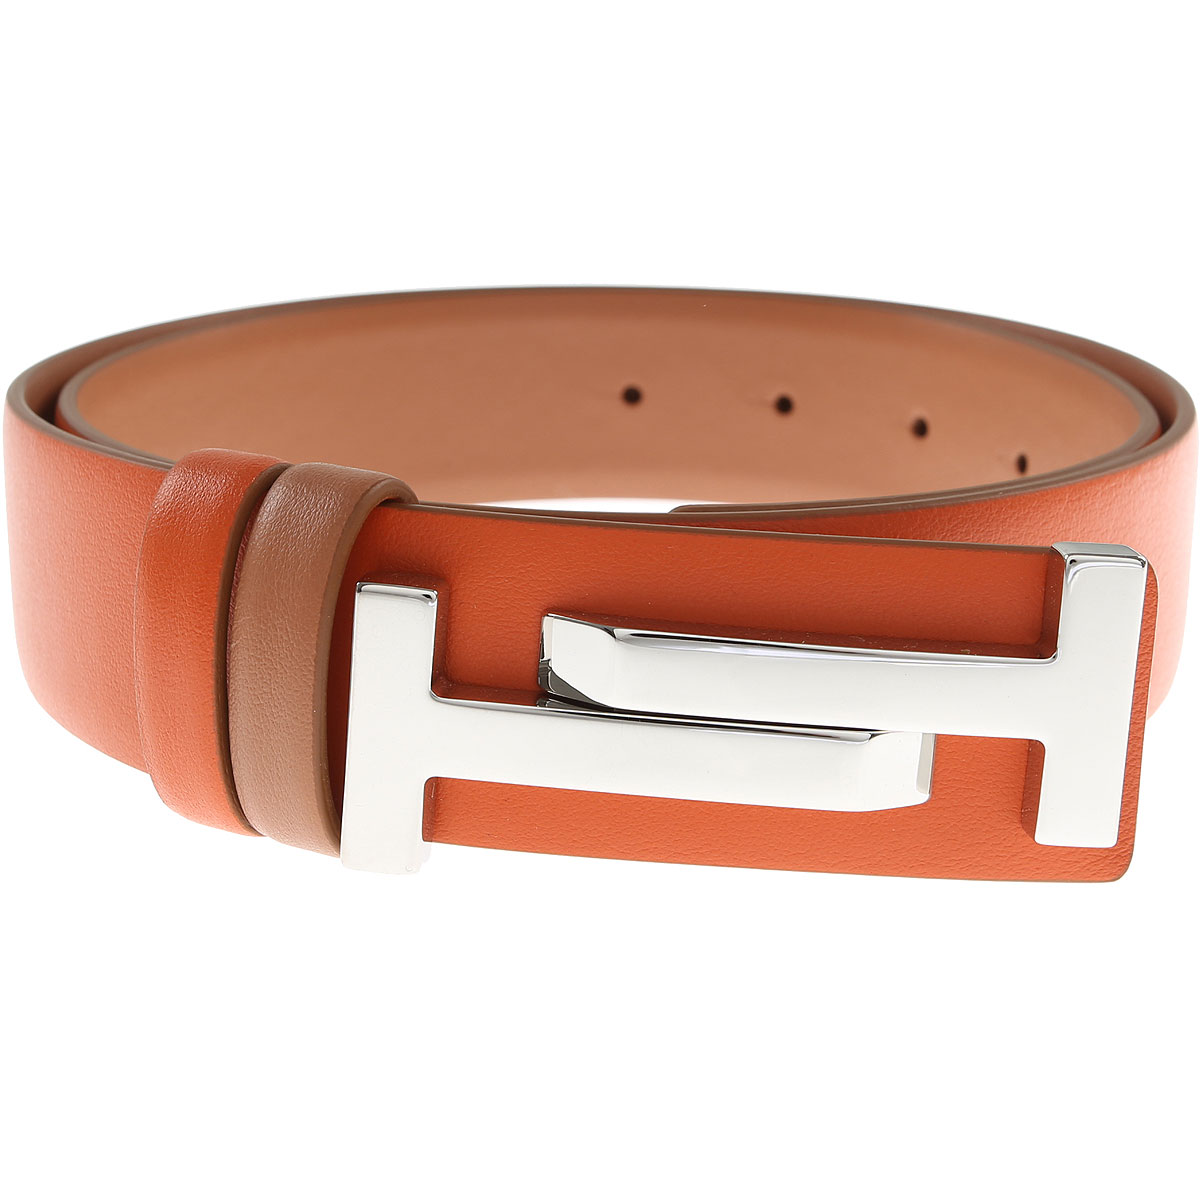 Tods Womens Belts On Sale, Brick Orange, Leather, 2017, 36 inches - 90 cm 32 inches - 80 cm 34 inches - 85 cm 38 inches - 95 cm 30 inches - 75 cm